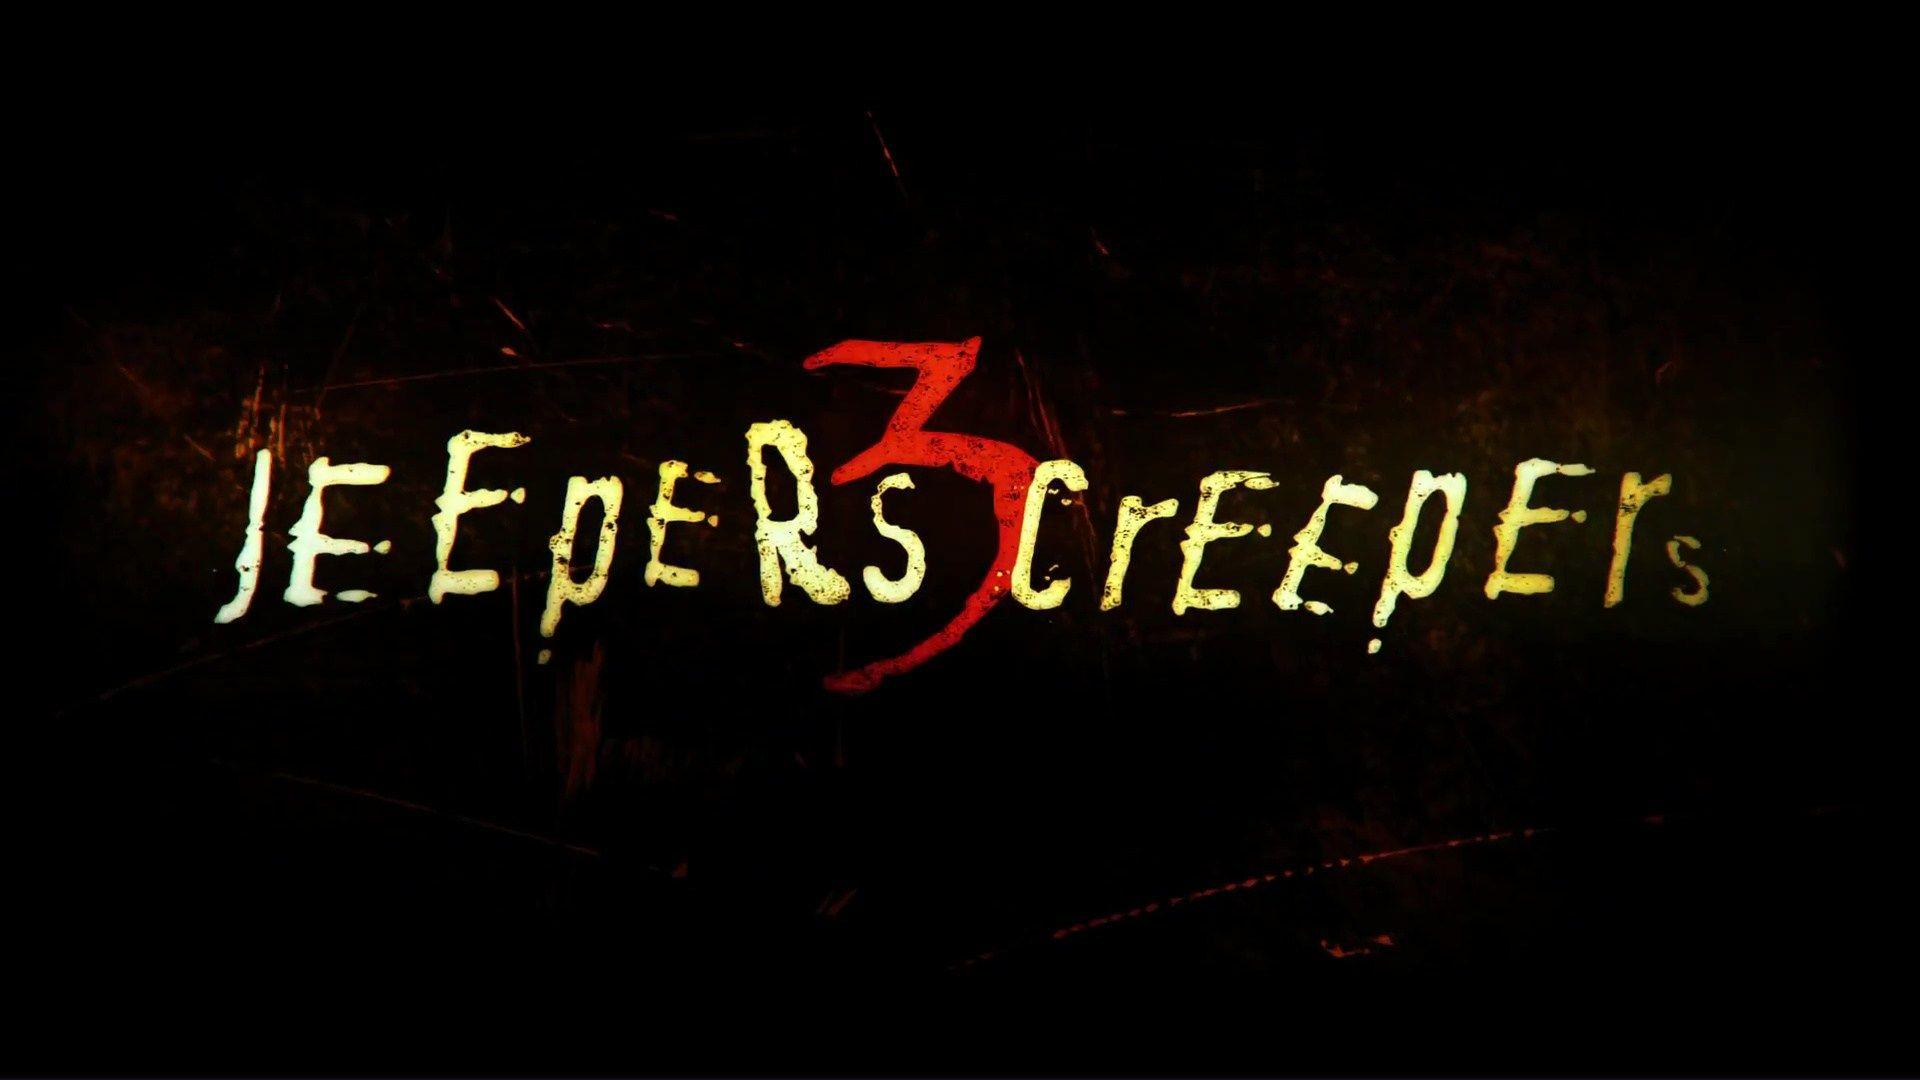 jeepers creepers 3 full movie online free greek subs